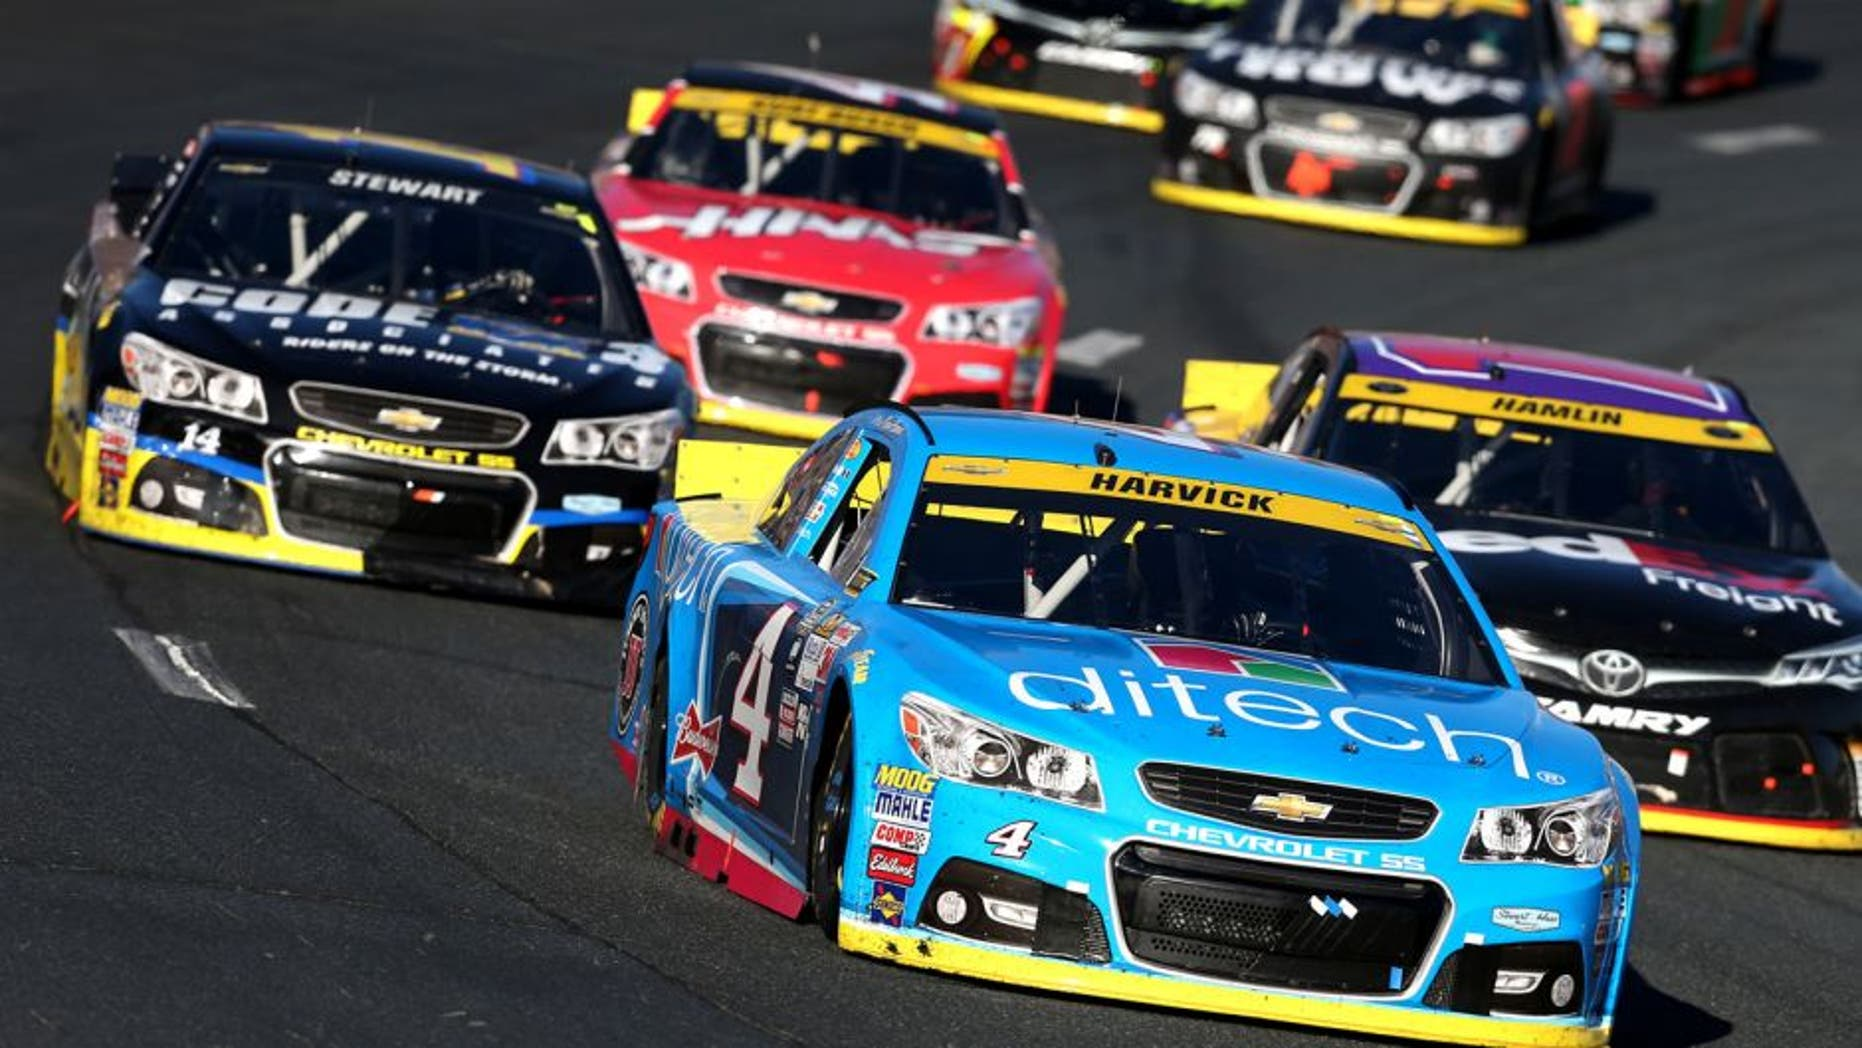 LOUDON, NH - SEPTEMBER 27: Kevin Harvick, driver of the #4 Ditech Chevrolet, leads a pack of cars during the NASCAR Sprint Cup Series SYLVANIA 300 at New Hampshire Motor Speedway on September 27, 2015 in Loudon, New Hampshire. (Photo by Todd Warshaw/NASCAR via Getty Images)